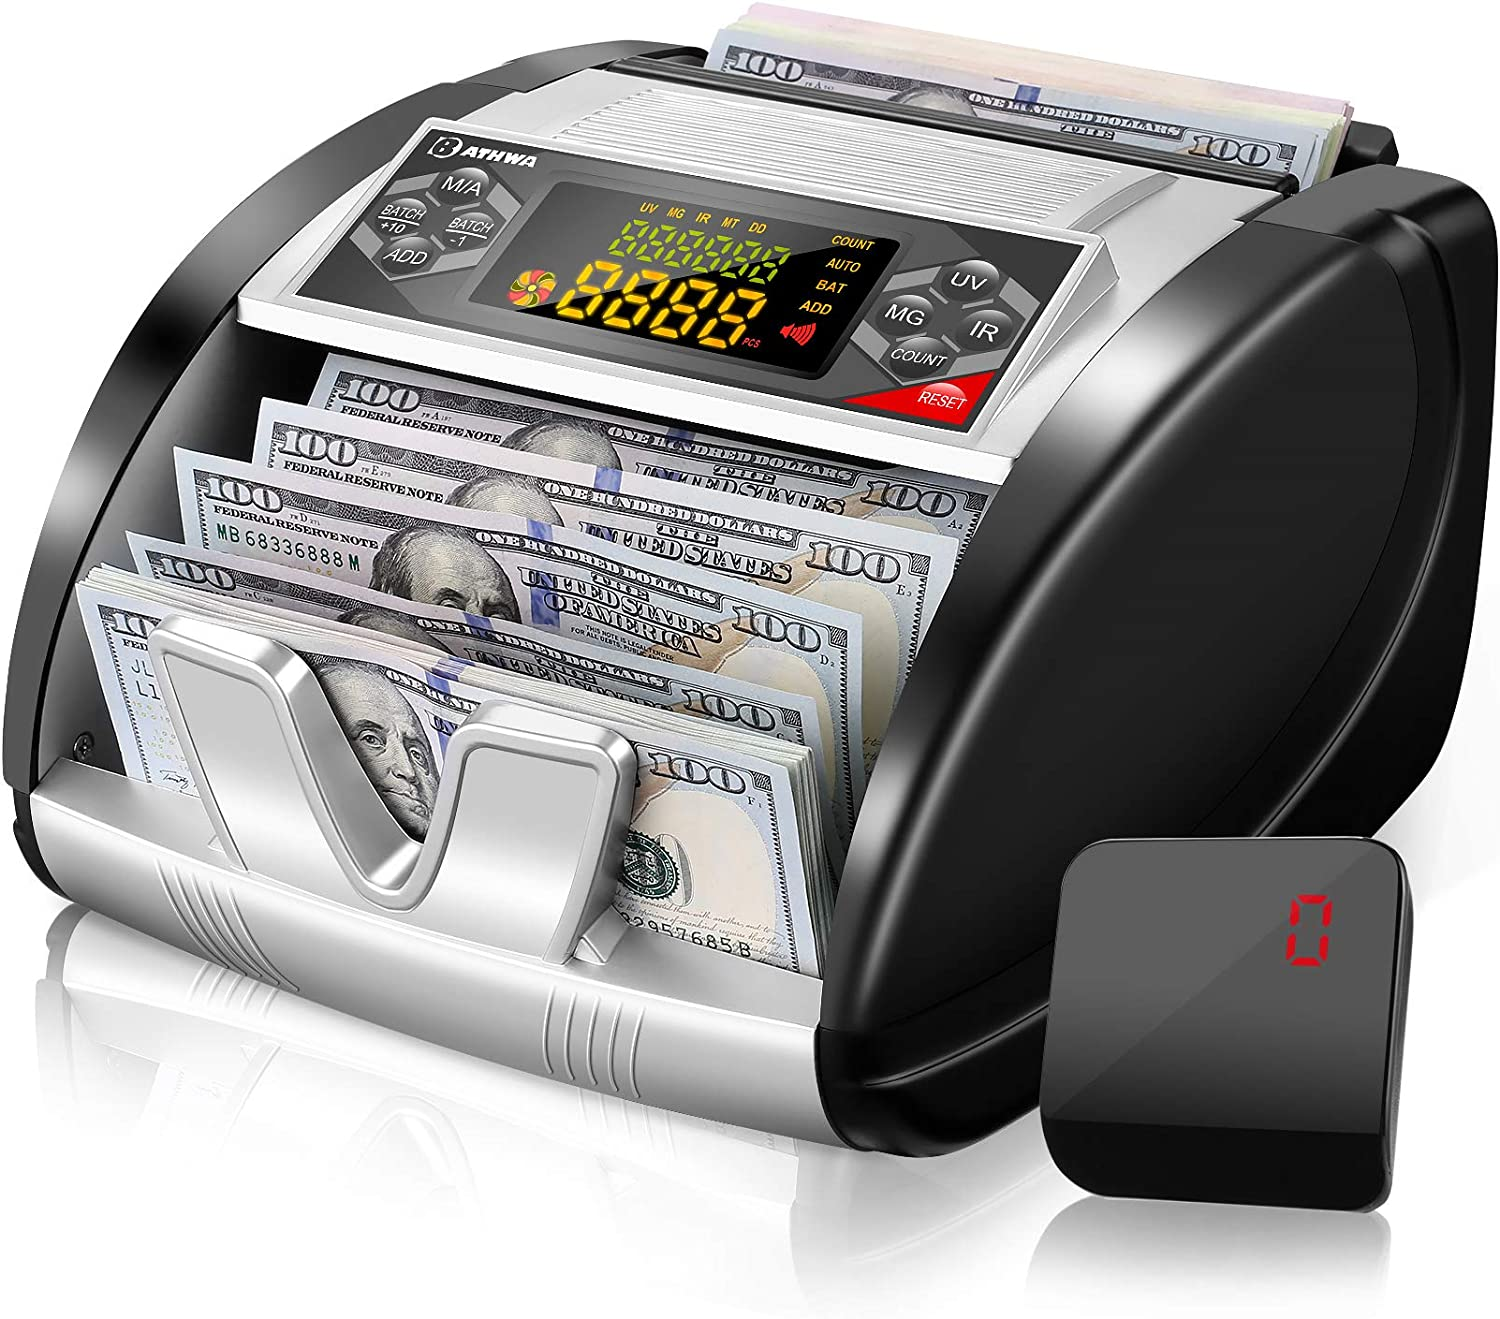 NX-510 New product! New type Business Grade Money Fort Worth Mall Counter with Machine Bil Counterfeit